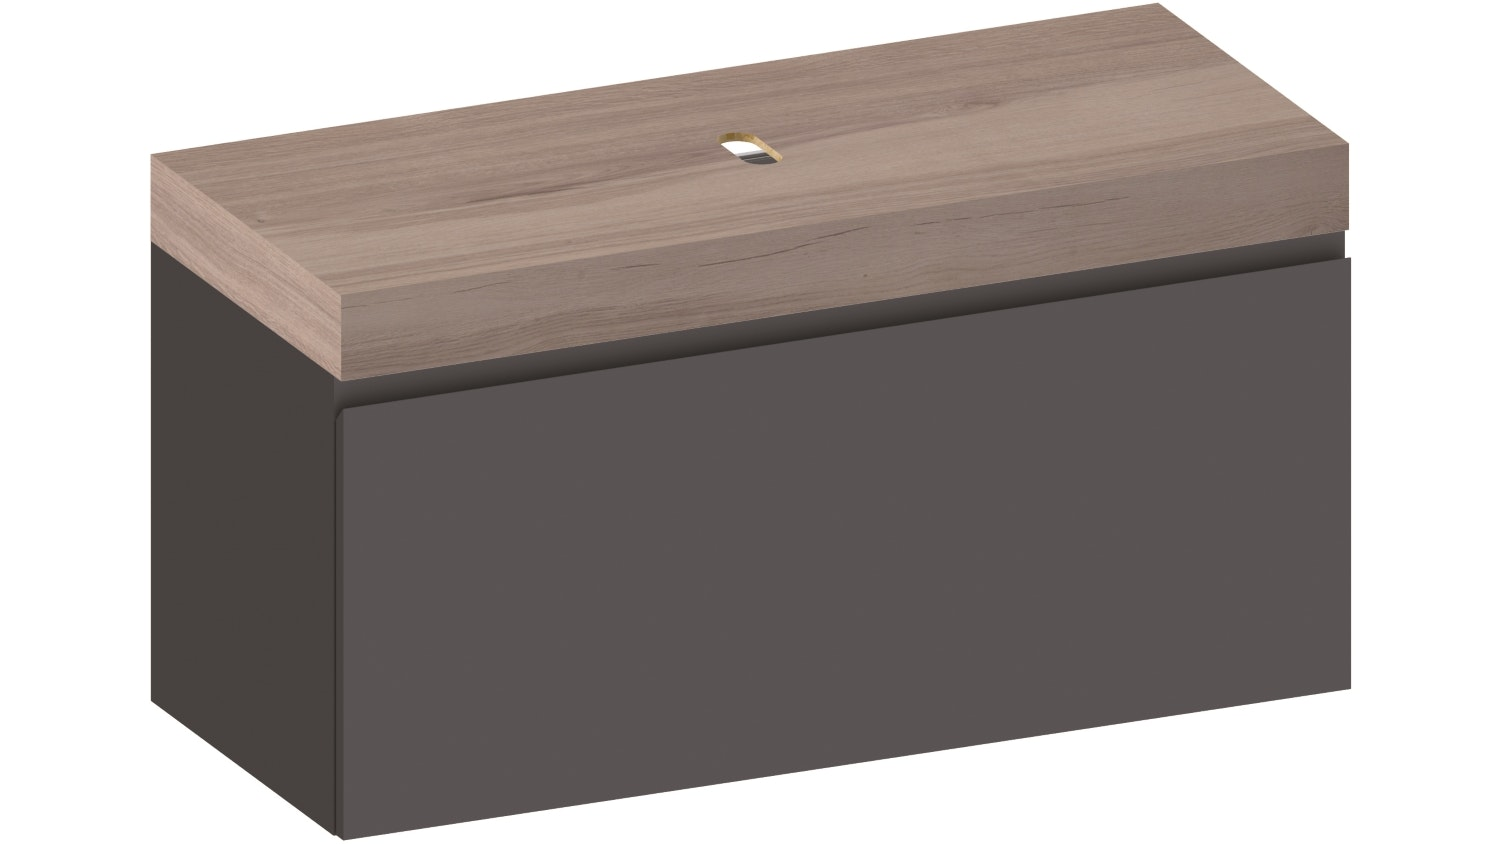 Kokoon Elements 1200 Wall Hung Vanity With HPL Rovere Wafer Top - Graphite